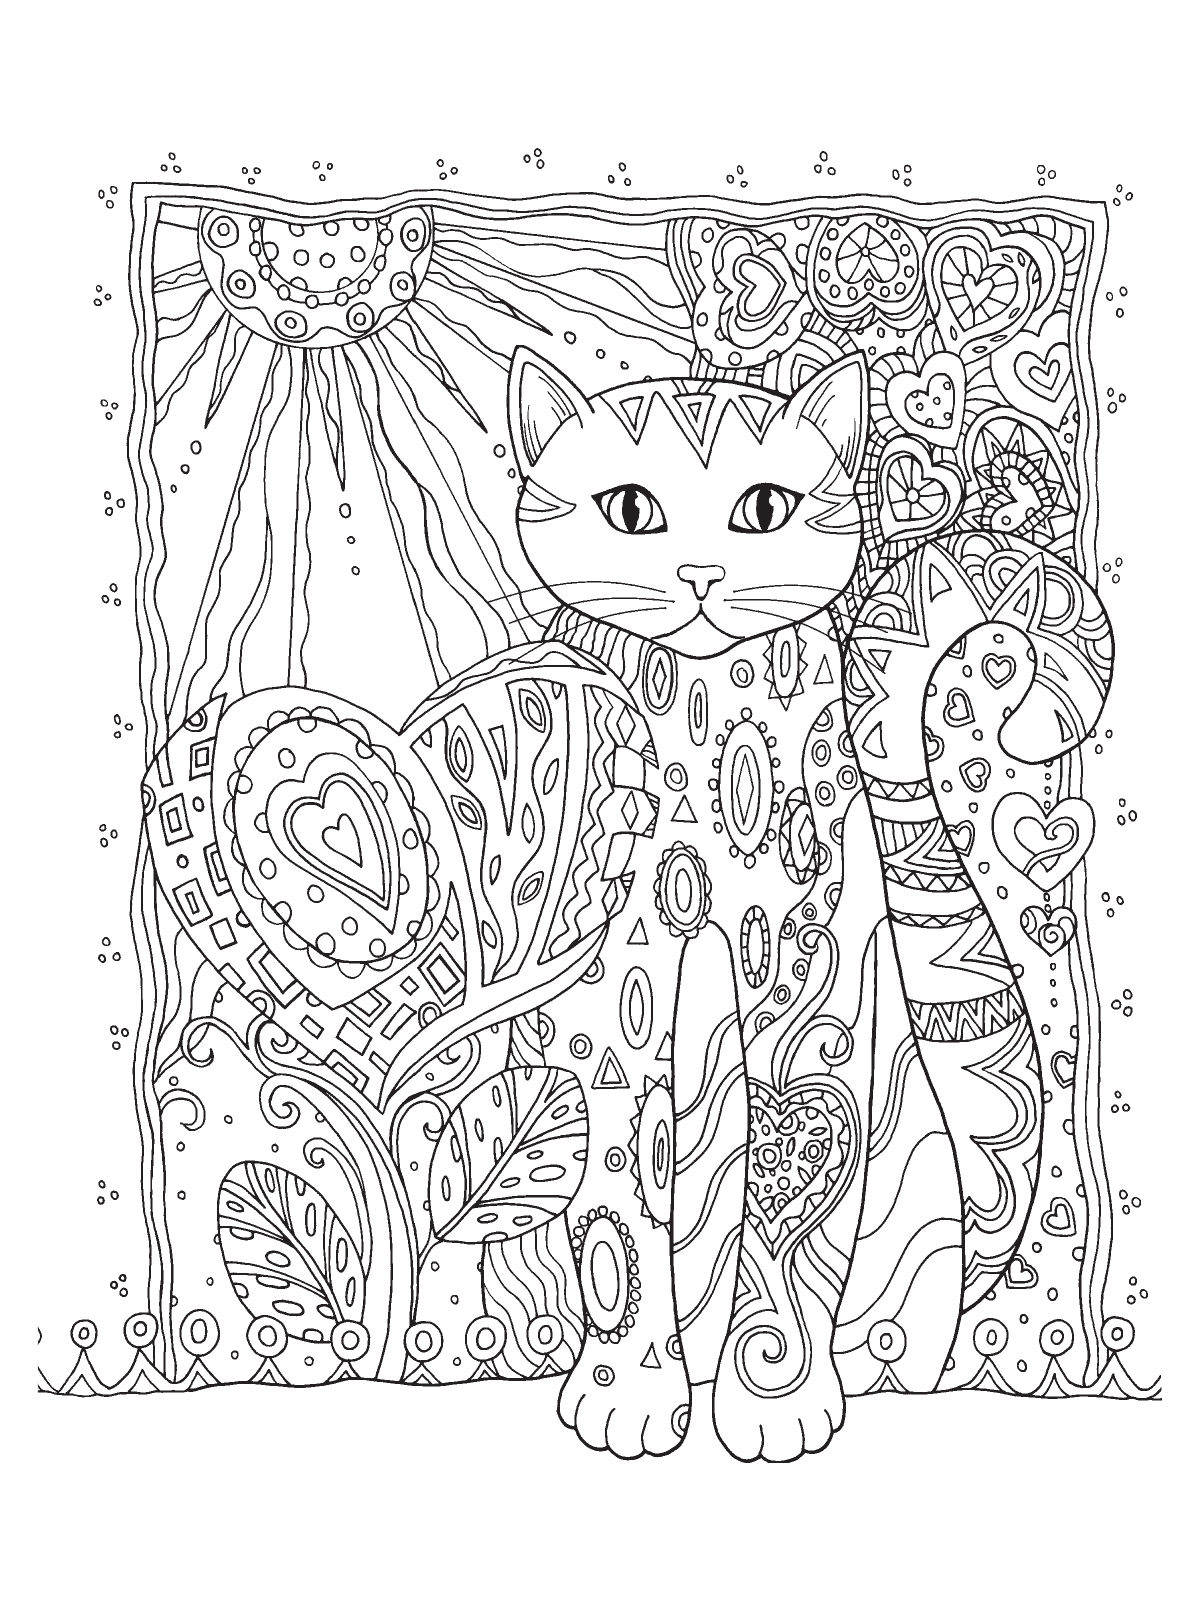 coloring pages free amp online coloring printable - HD